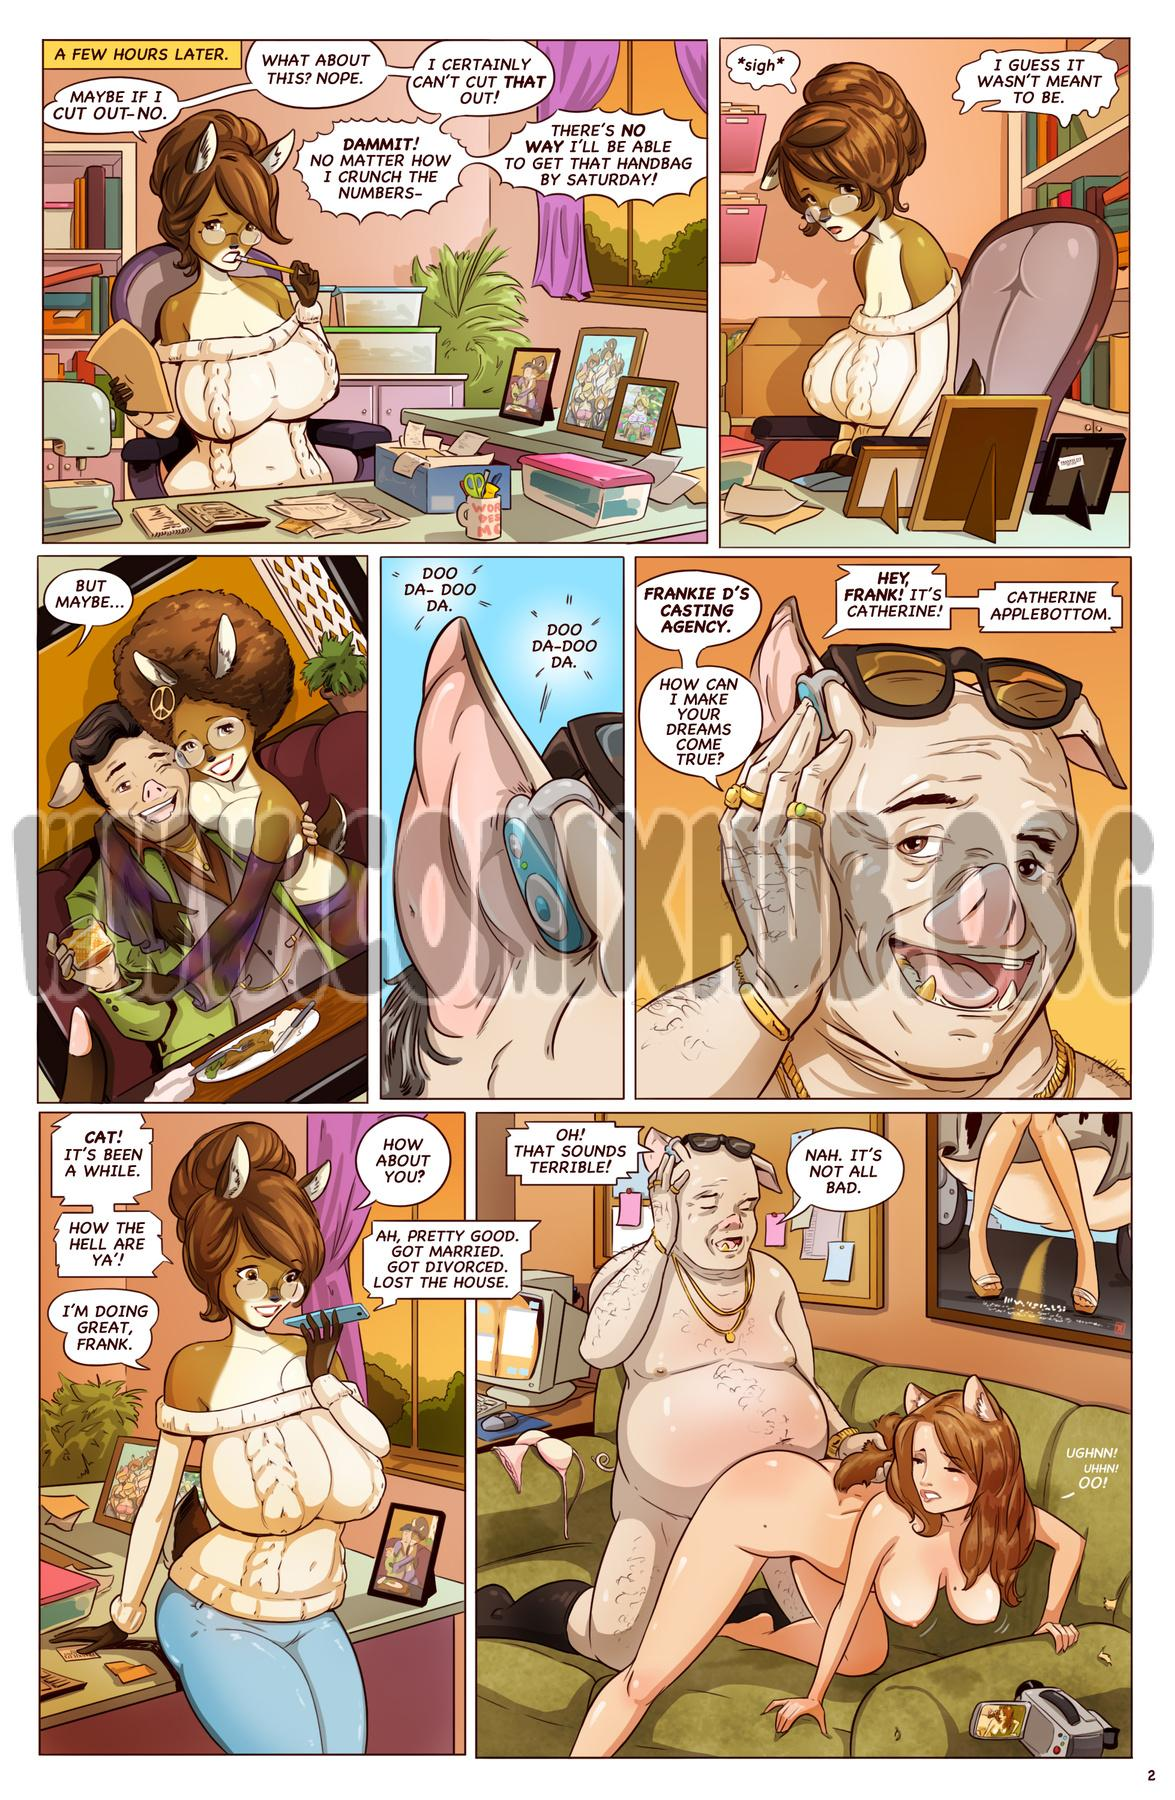 Catherine Applebottom - Back in Action! porn comics Oral sex, Blowjob, Gangbang, Glasses, Straight, Titfuck